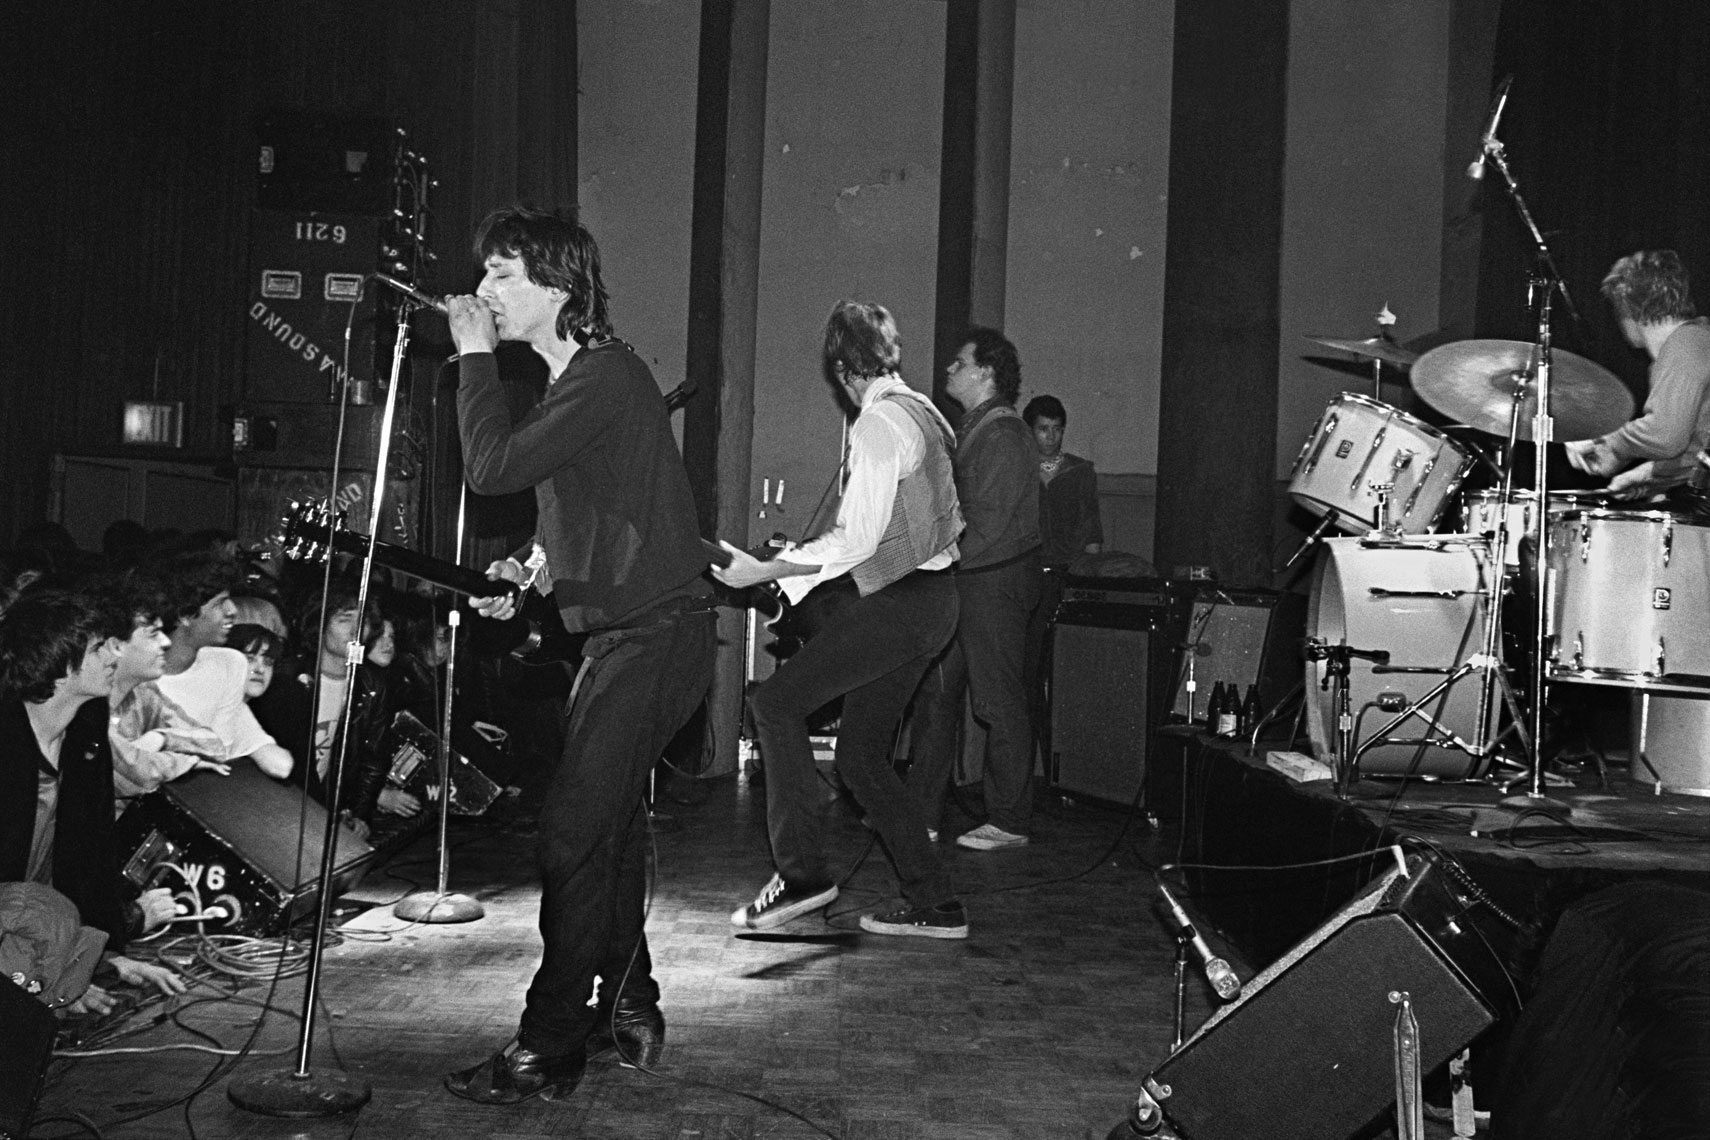 040_044_Johnny-Thunders-and-Heartbreakers_Irving-Plaza